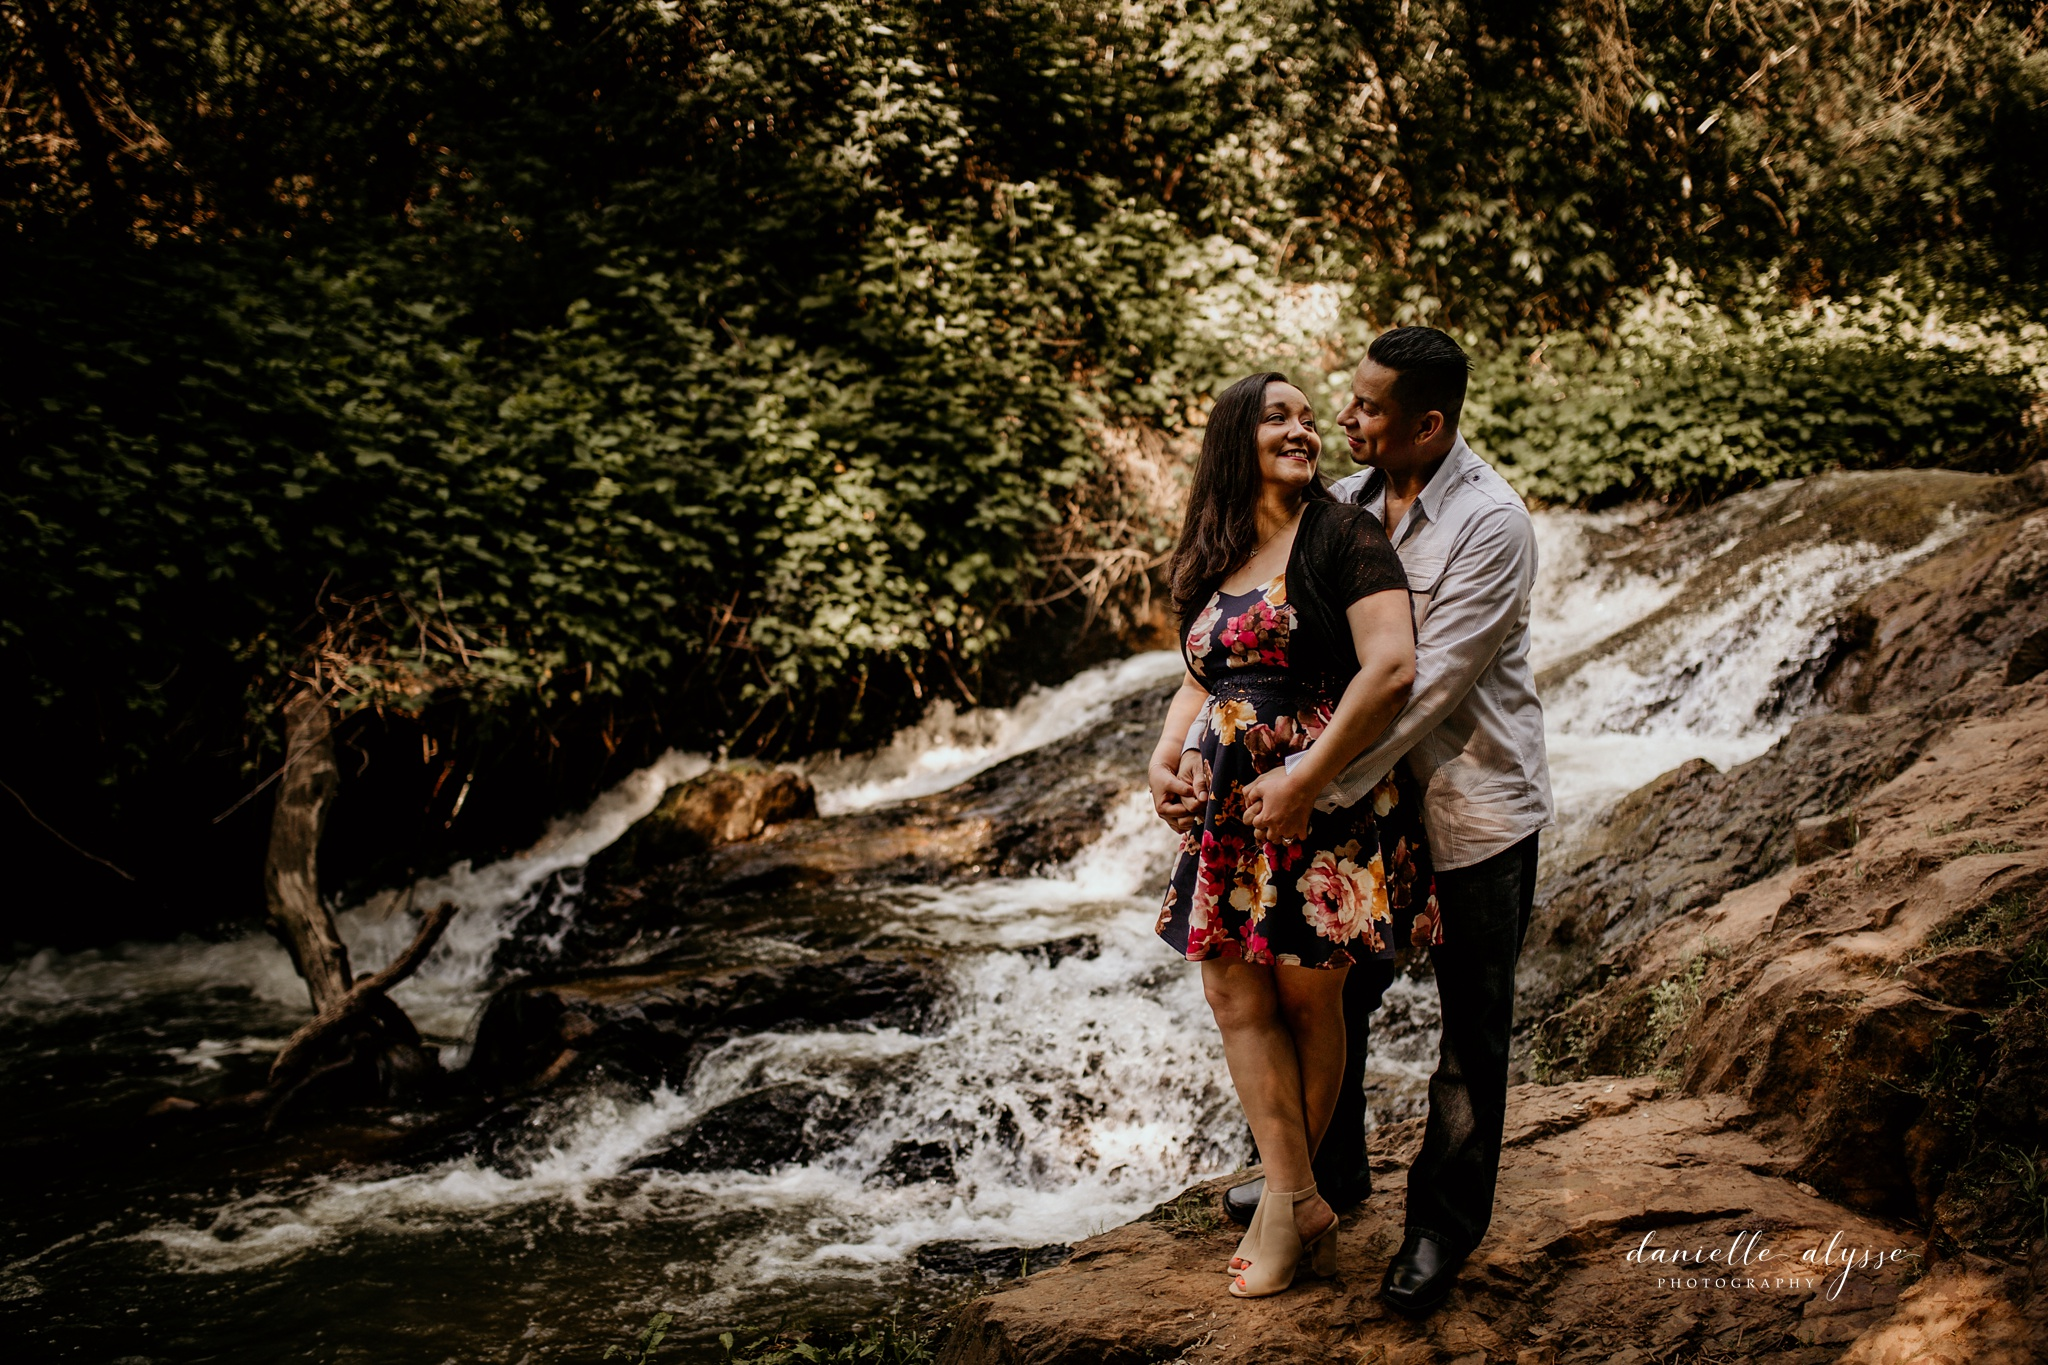 180425_engagement_monica_auburn_water_falls_auburn_danielle_alysse_photography_sacramento_photographer_blog_20_WEB.jpg